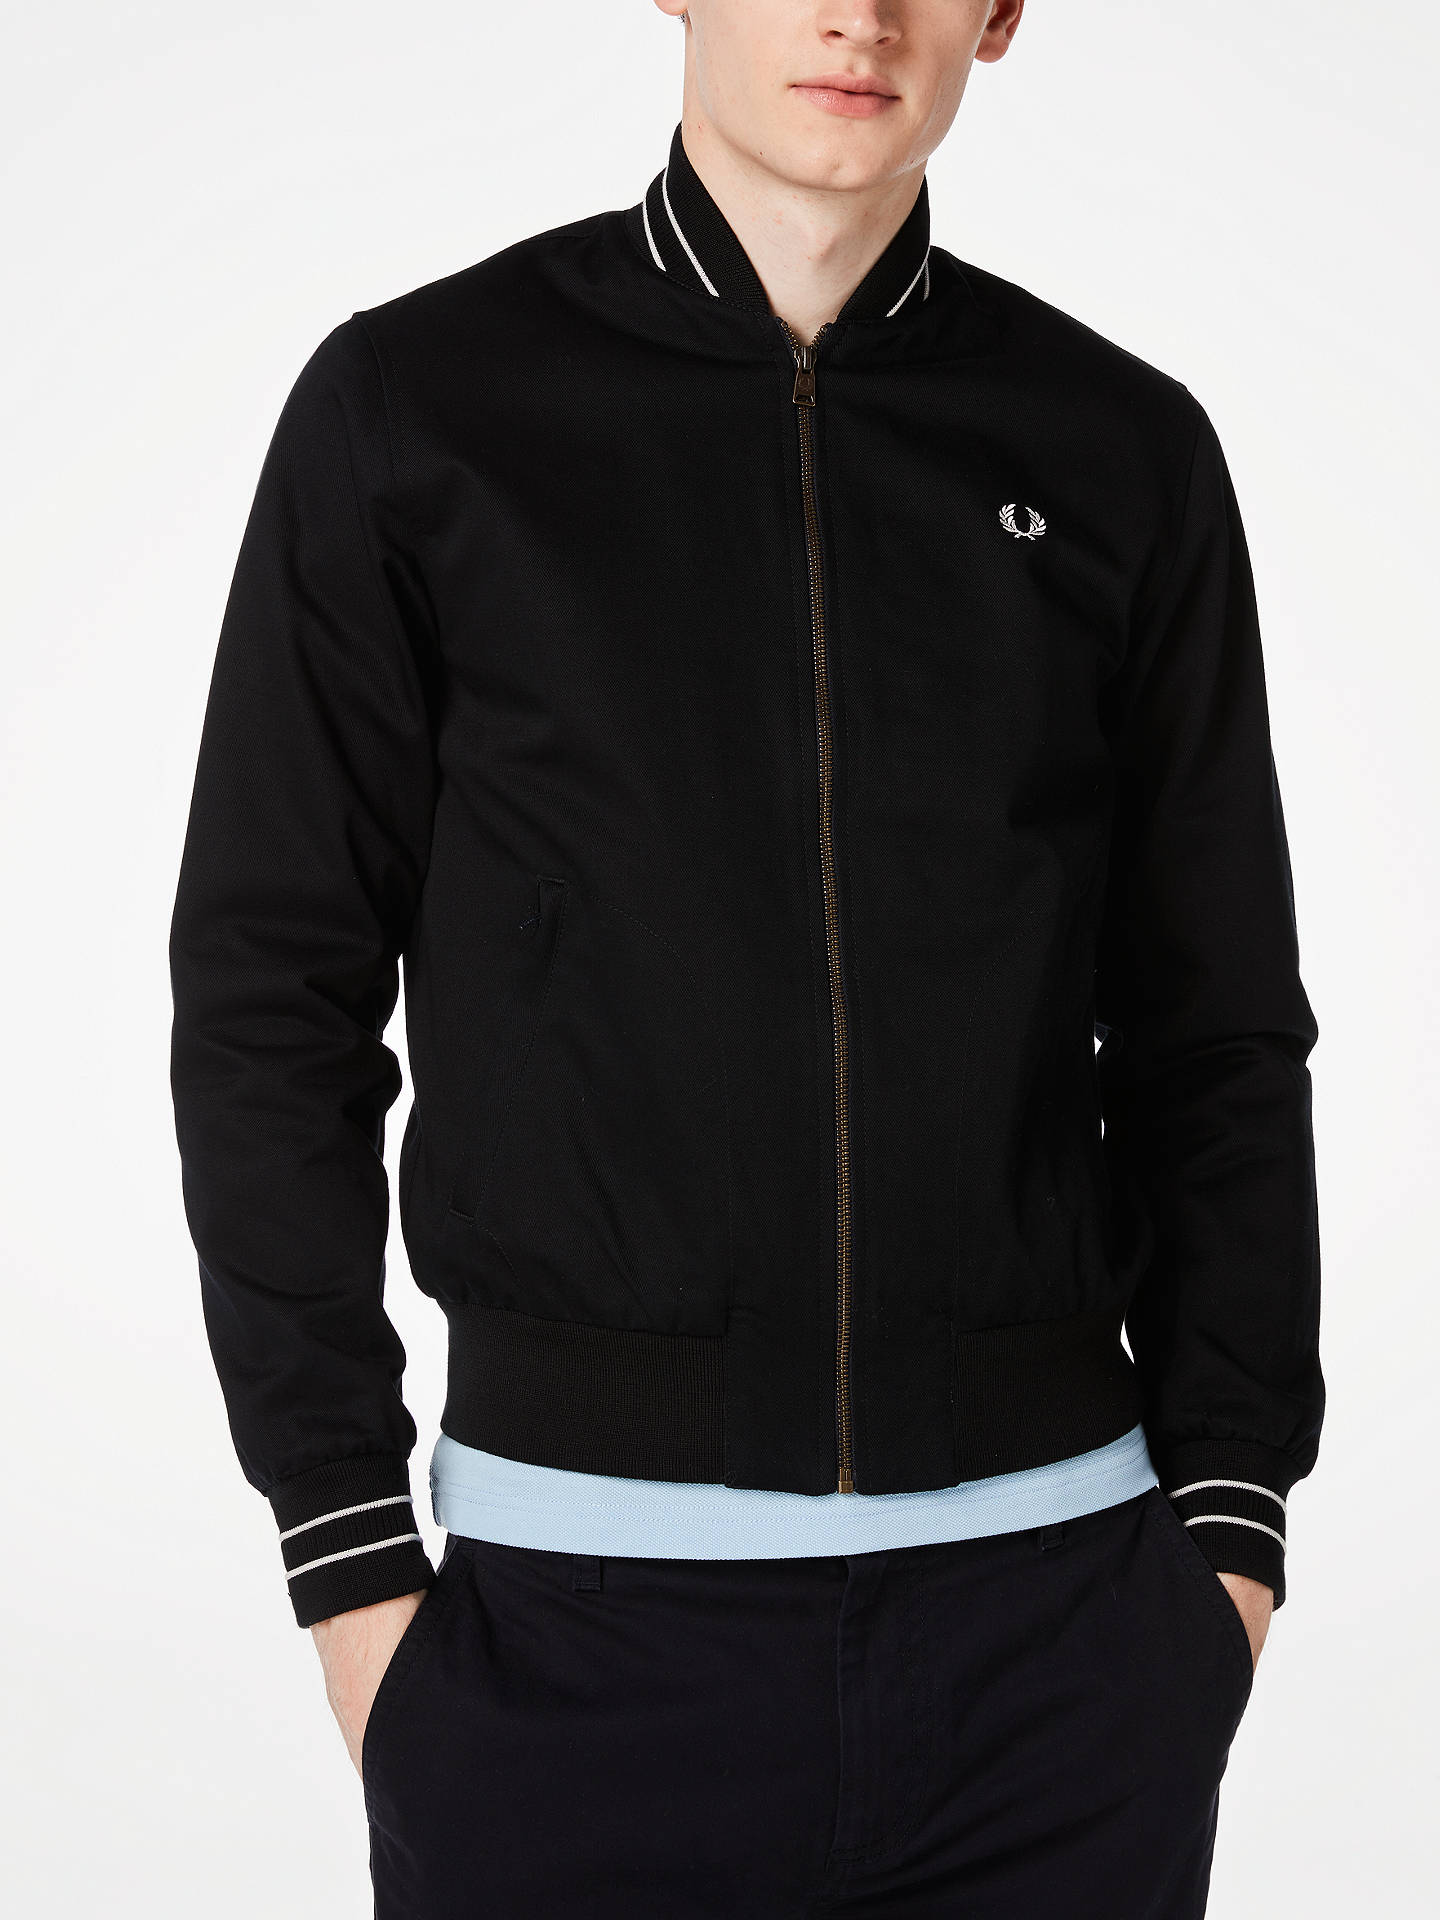 97178f481 Fred Perry Bomber Jacket at John Lewis & Partners